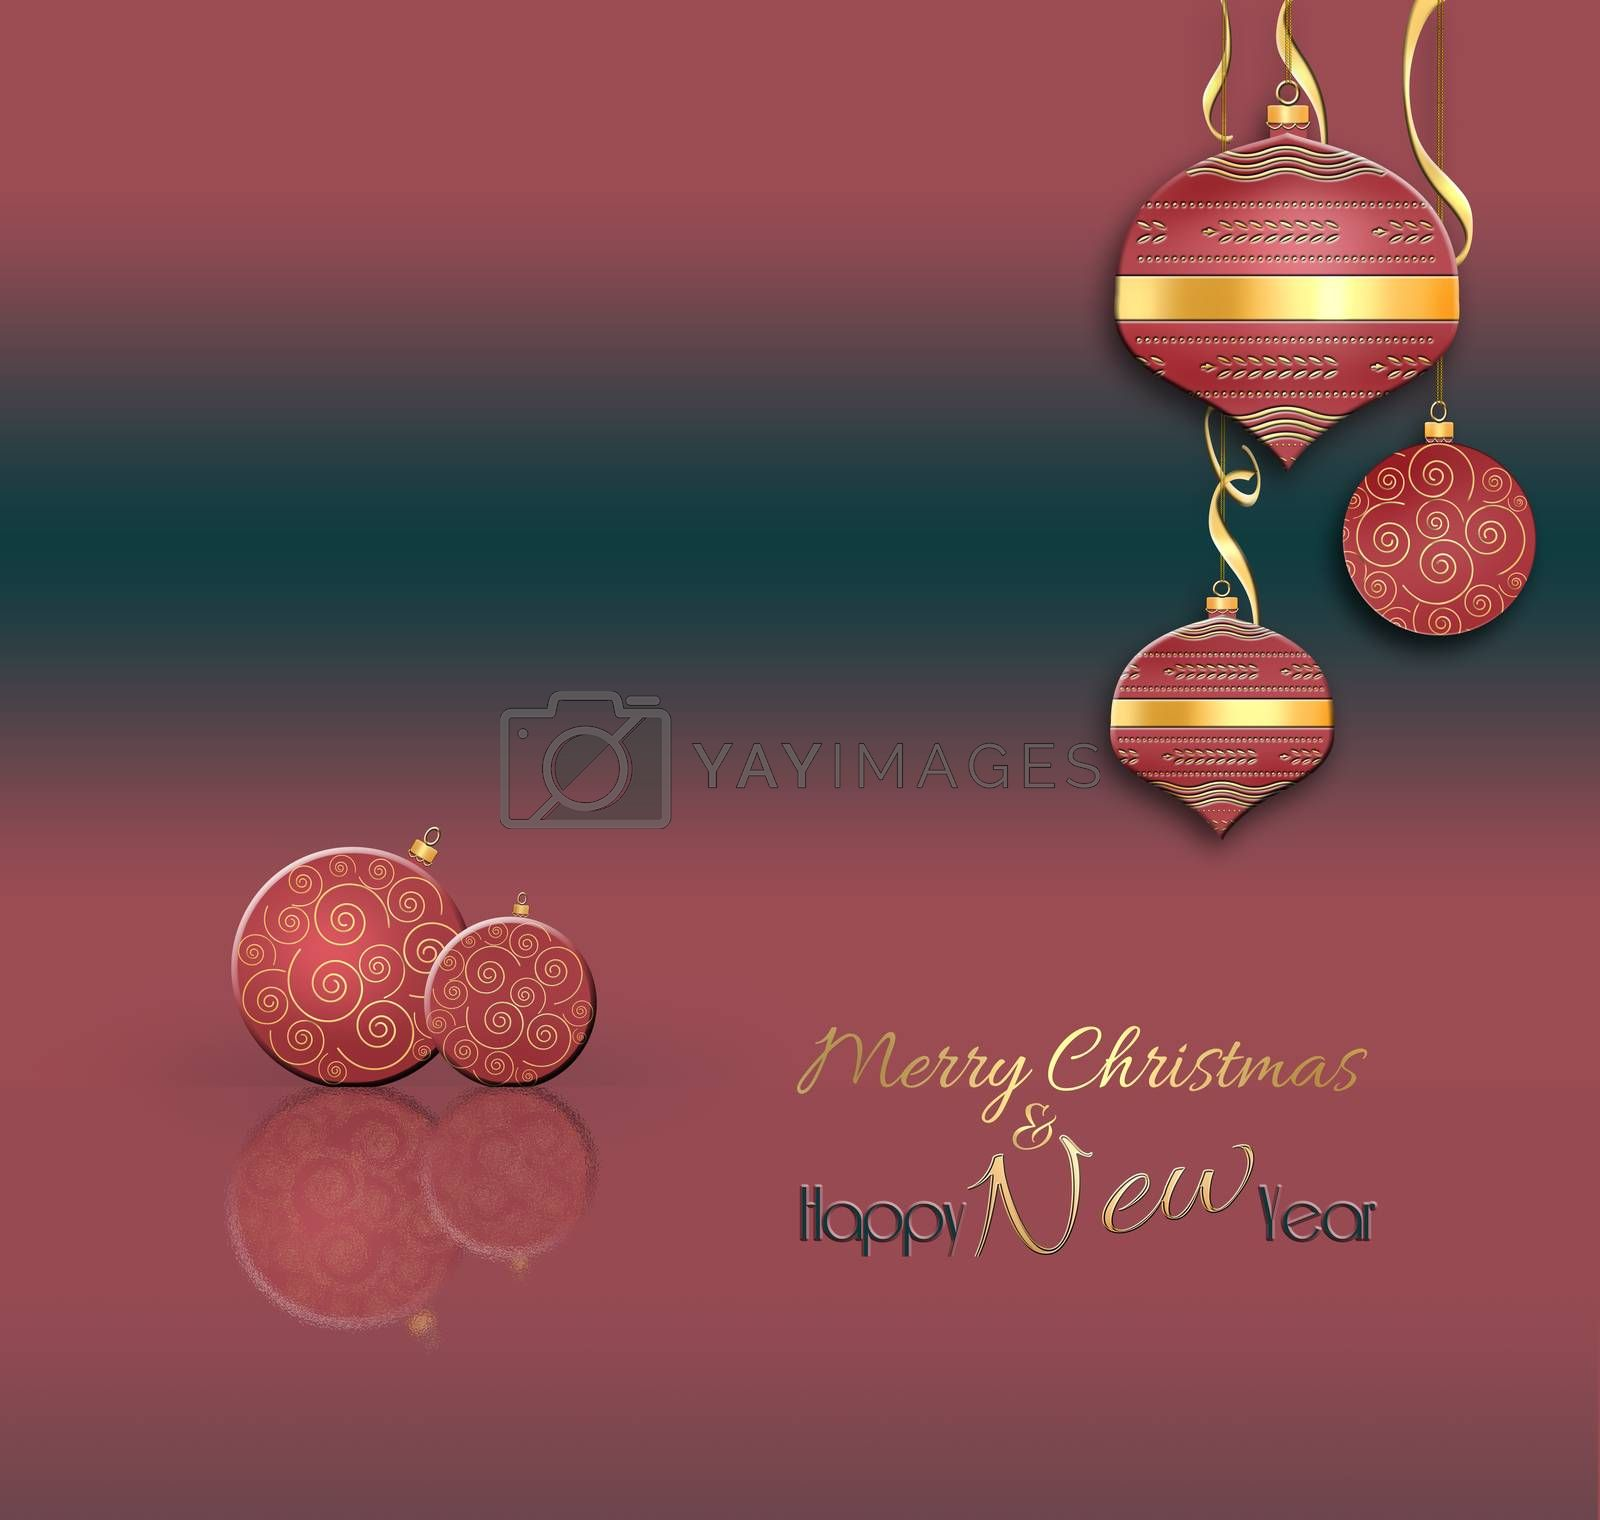 Christmas and New Year balls background. Hanging red decorative bauble with gold decor on red black background. Text Merry Christmas Happy New year. 3D illustration